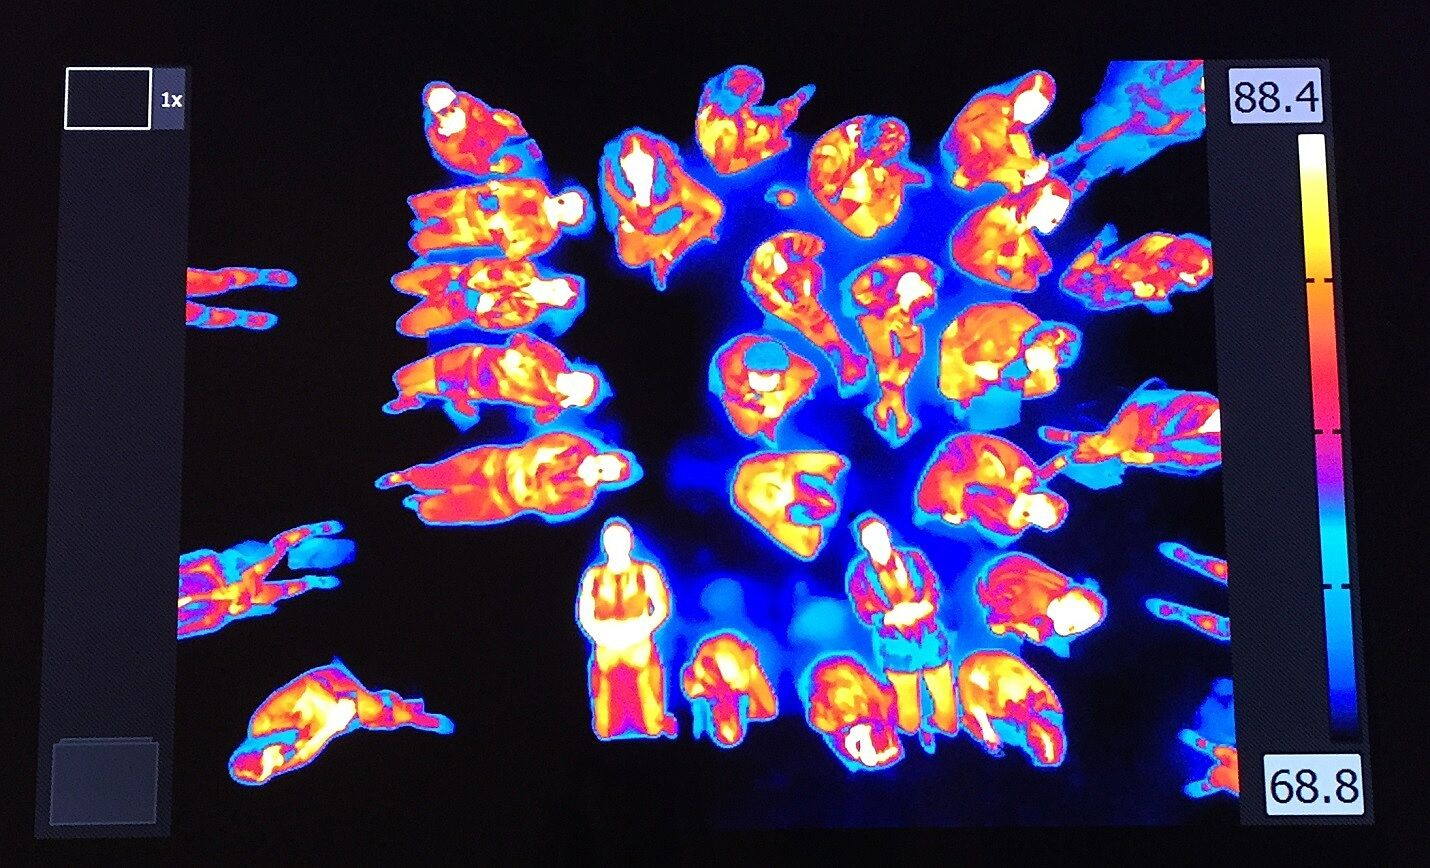 Thermal scan image of people.